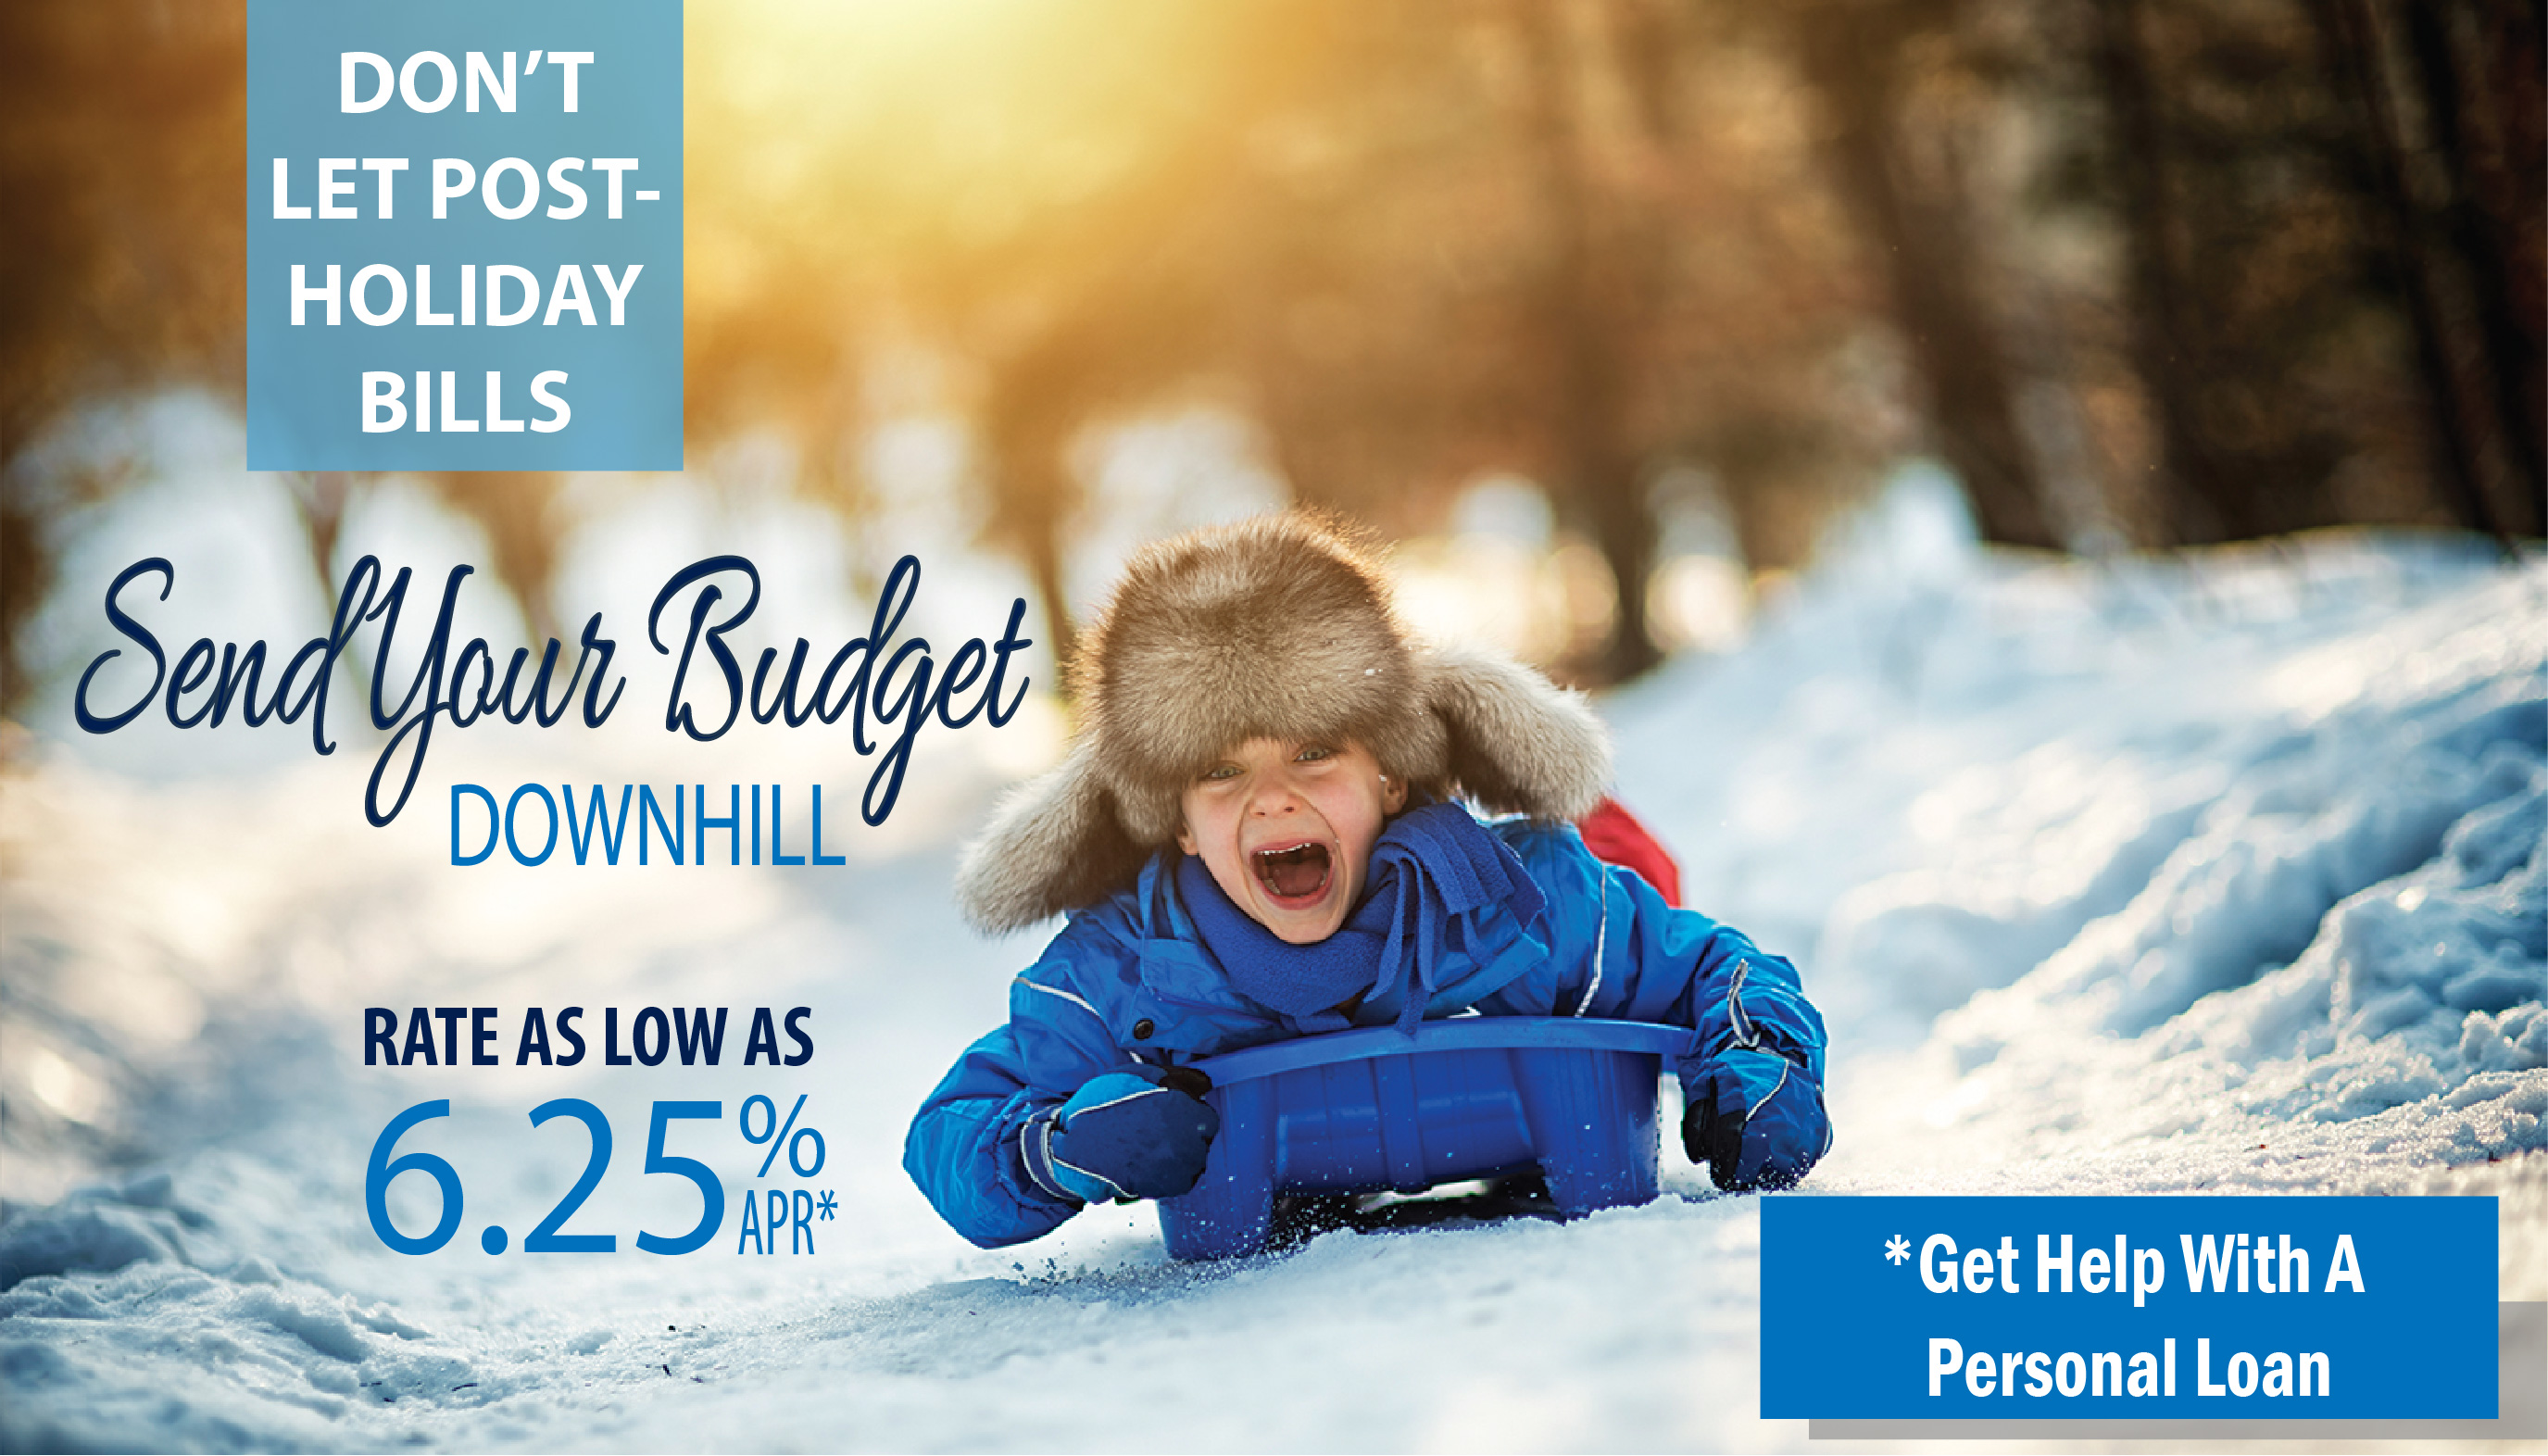 Consolidate to a CHFCU Personal Loan and make your savings snowball!